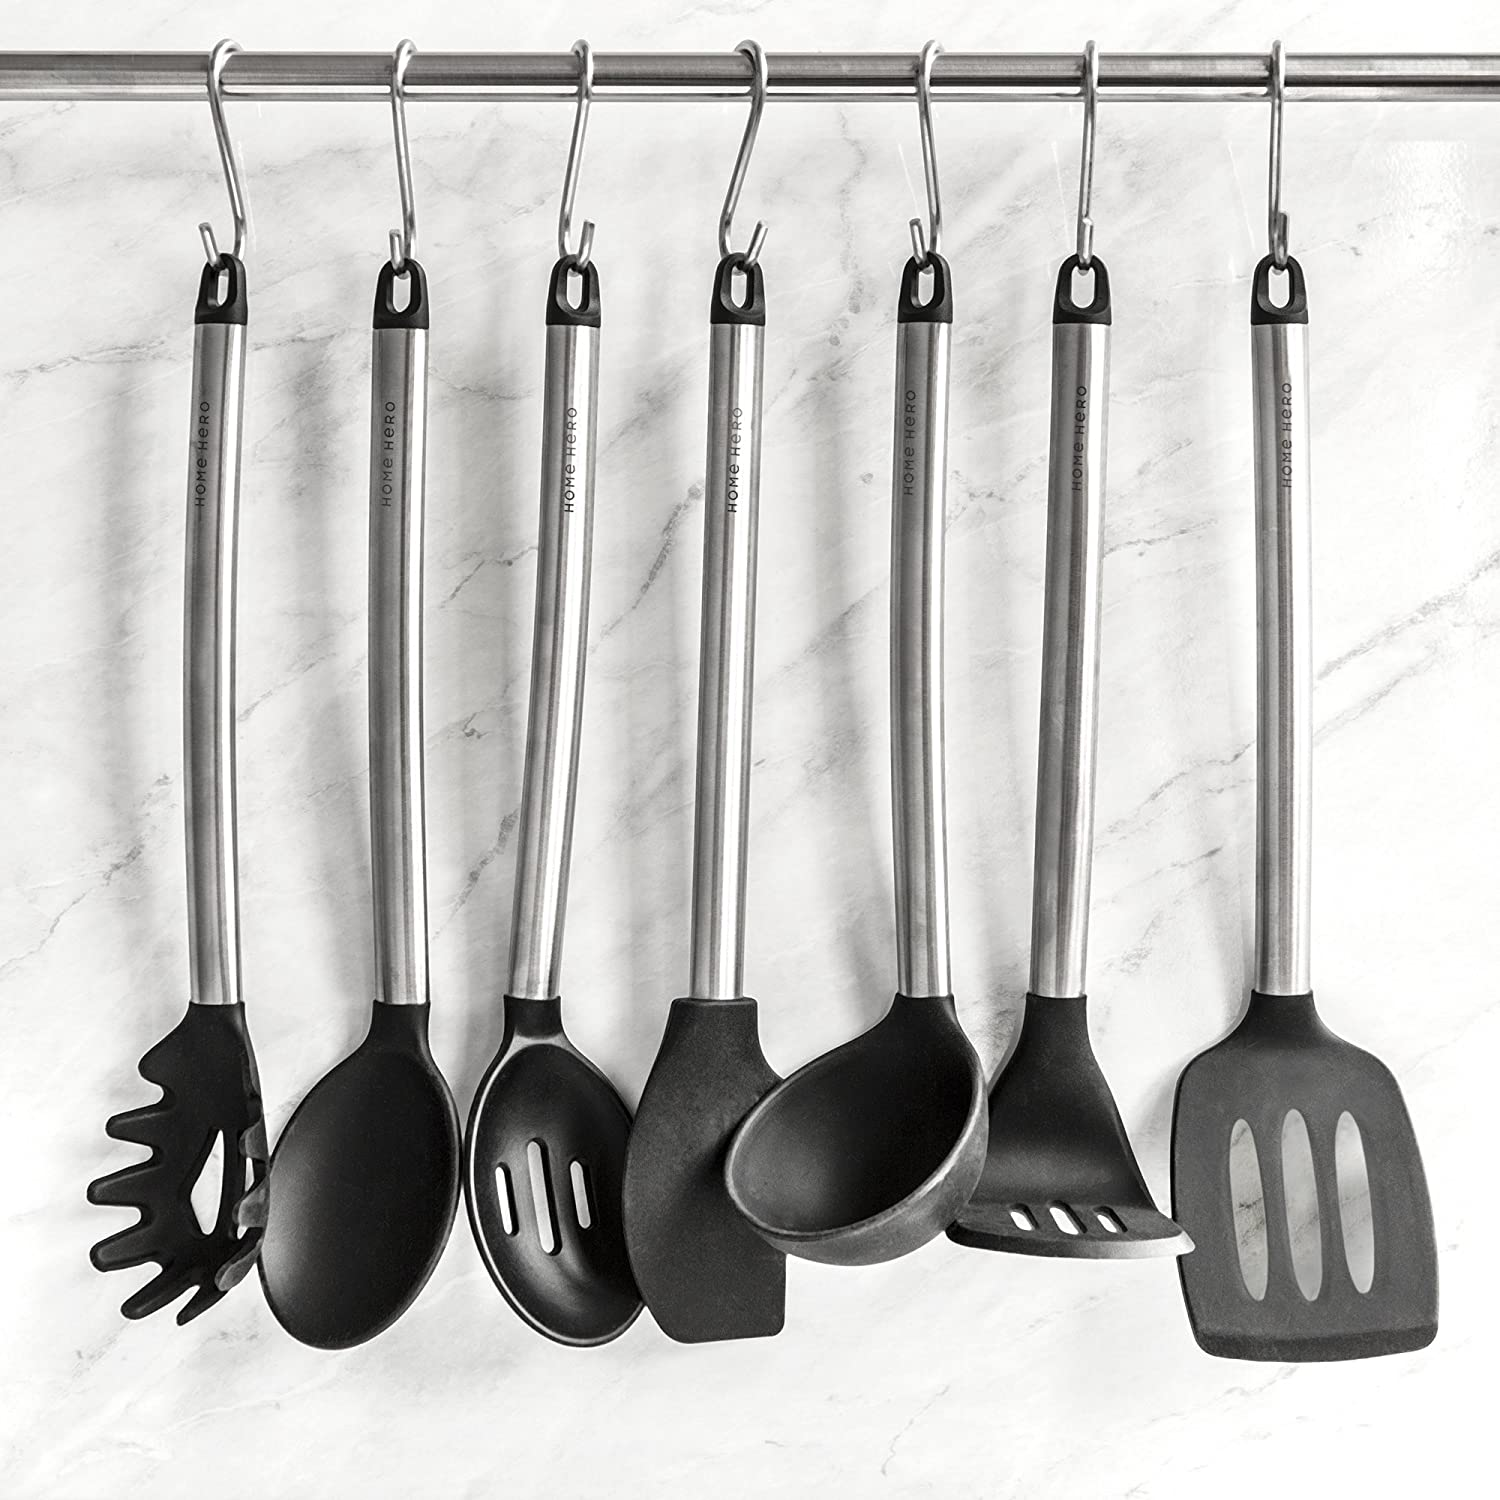 Home Hero 11 Silicone Cooking Utensils Kitchen Utensil Set - Stainless Steel Silicone Kitchen Utensils Set - Silicone Utensil Set Spatula Set - Silicone Utensils Cooking Utensil Set Salad Tongs: Kitchen & Dining